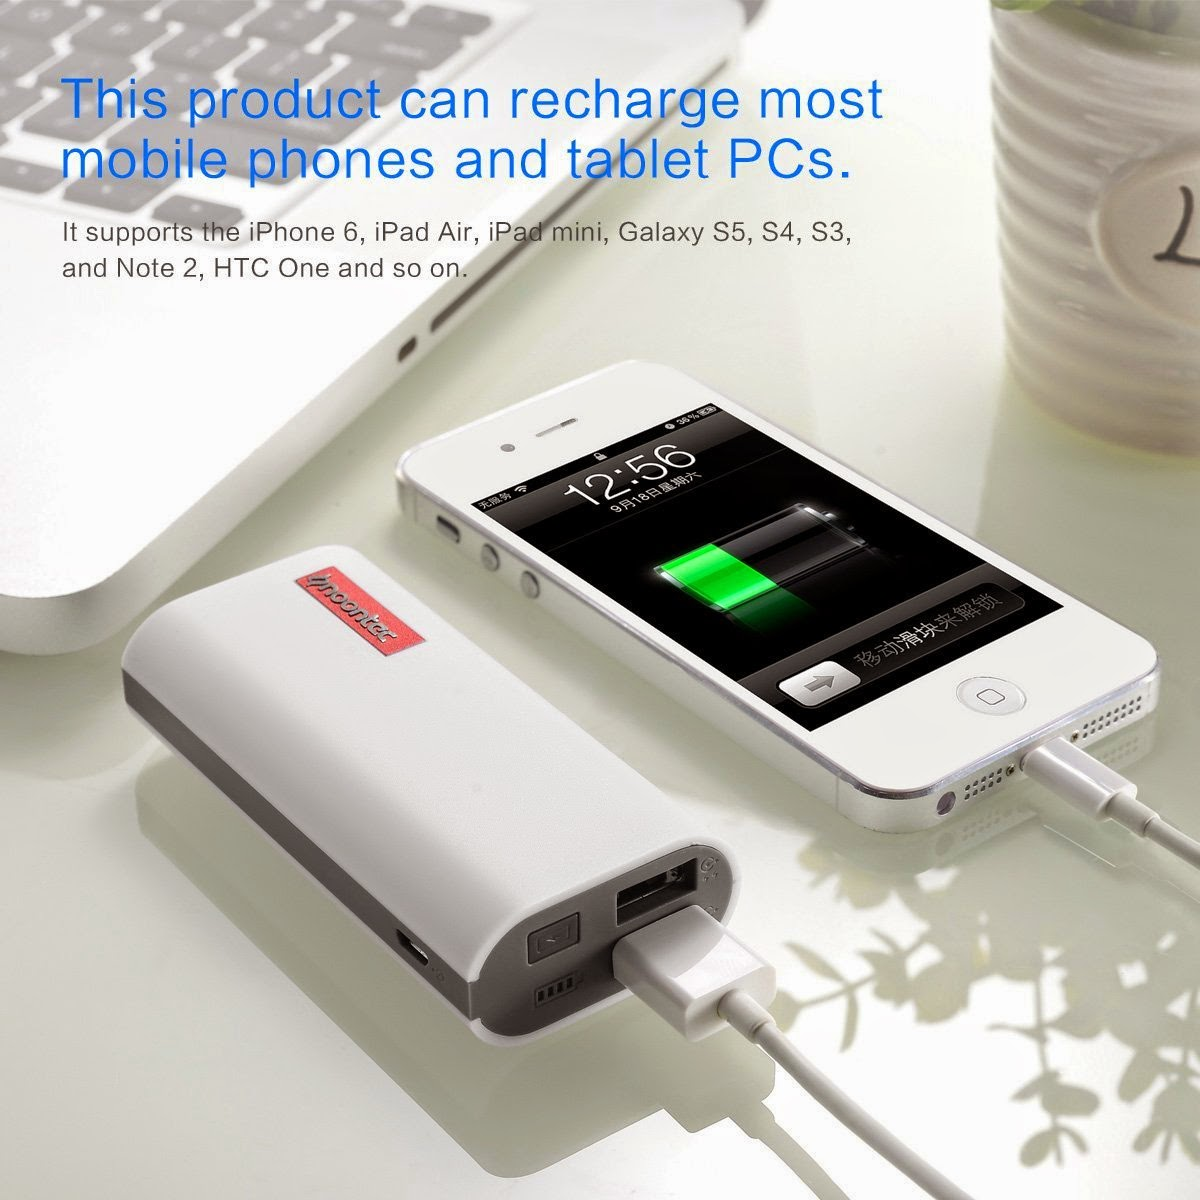 5200mAh power bank on promo, 50% off, coupon code: 9LO9Q7YI